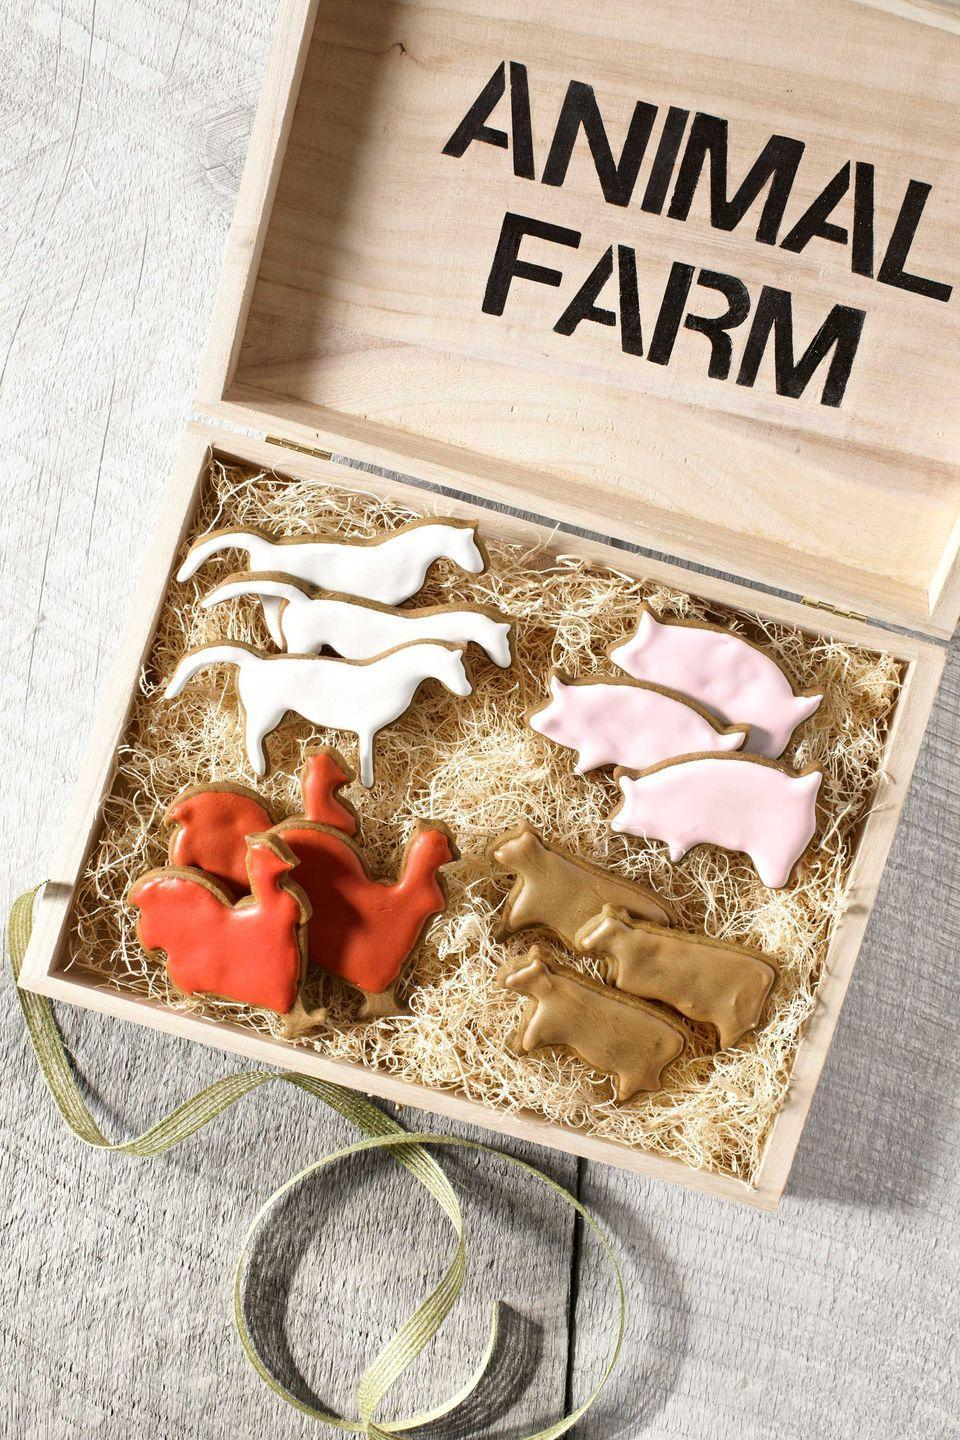 "<p>Traditional gingerbread takes a walk on the wild side, via critter cookie cutters. Corral the whole stable in a hand-stenciled box filled with ""hay.""</p><p><a href=""https://www.countryliving.com/food-drinks/recipes/a4231/gingerbread-animals-recipe-clv1212/"" rel=""nofollow noopener"" target=""_blank"" data-ylk=""slk:Get the recipe."" class=""link rapid-noclick-resp""><strong>Get the recipe.</strong></a></p>"